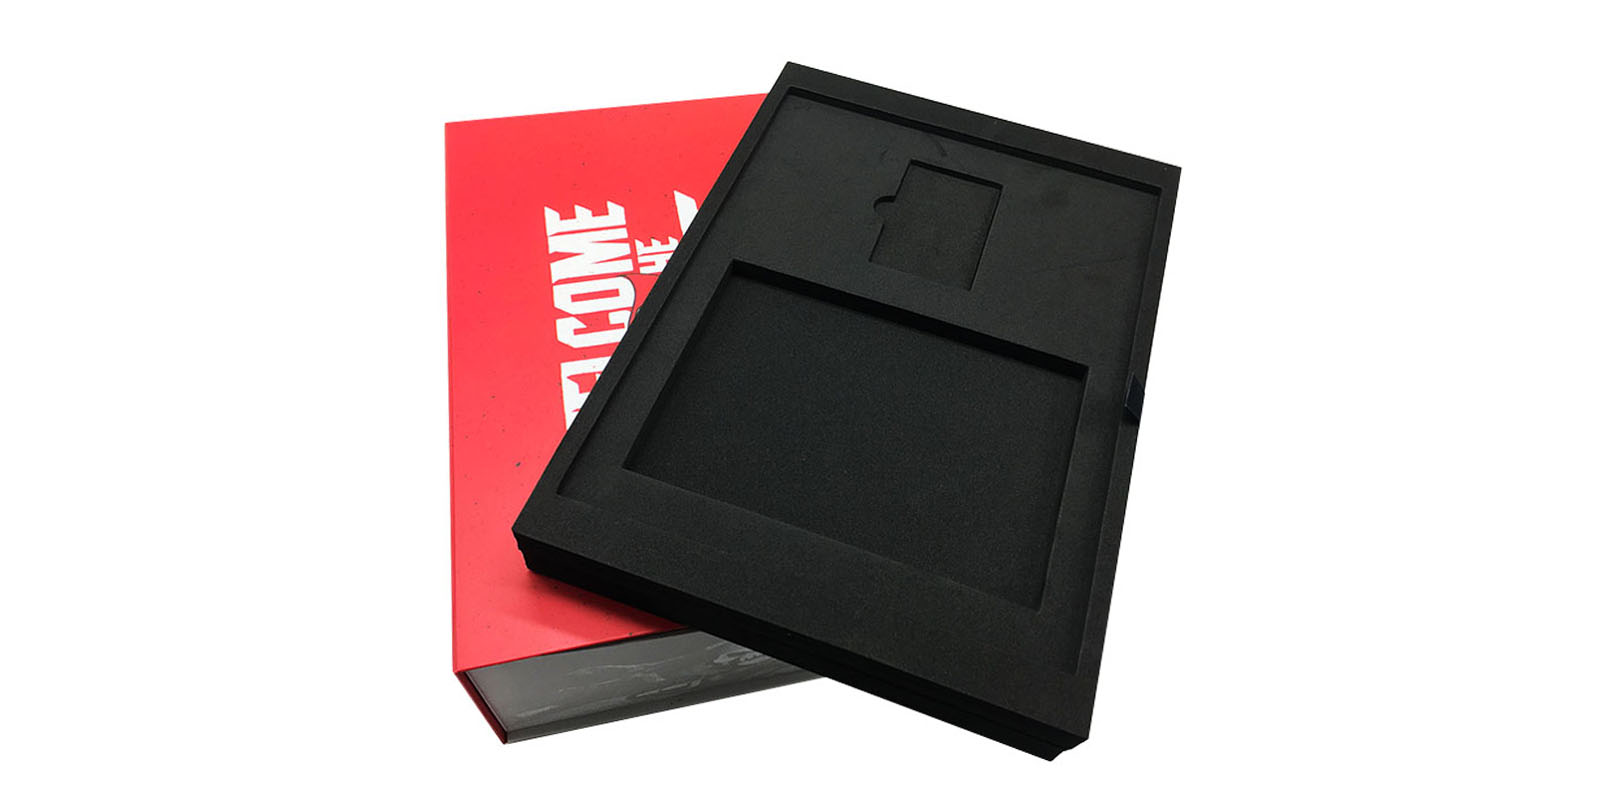 product-Mingyi Printing-Customized design luxury clamshell greyboard souvenir gift packaging box wit